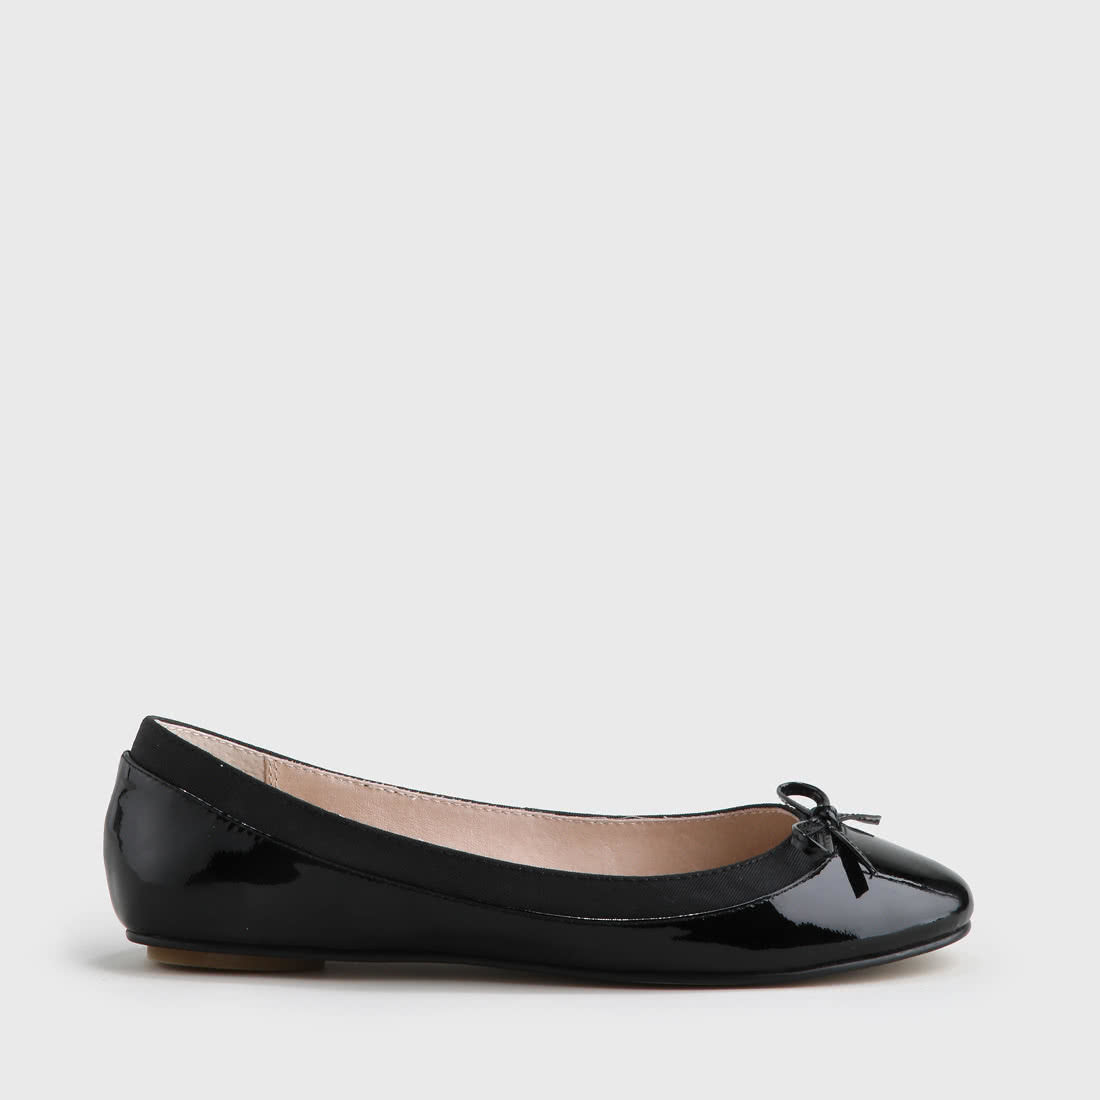 57480ec9e8f2c Annelie ballet flats black patent leather buy online in BUFFALO ...